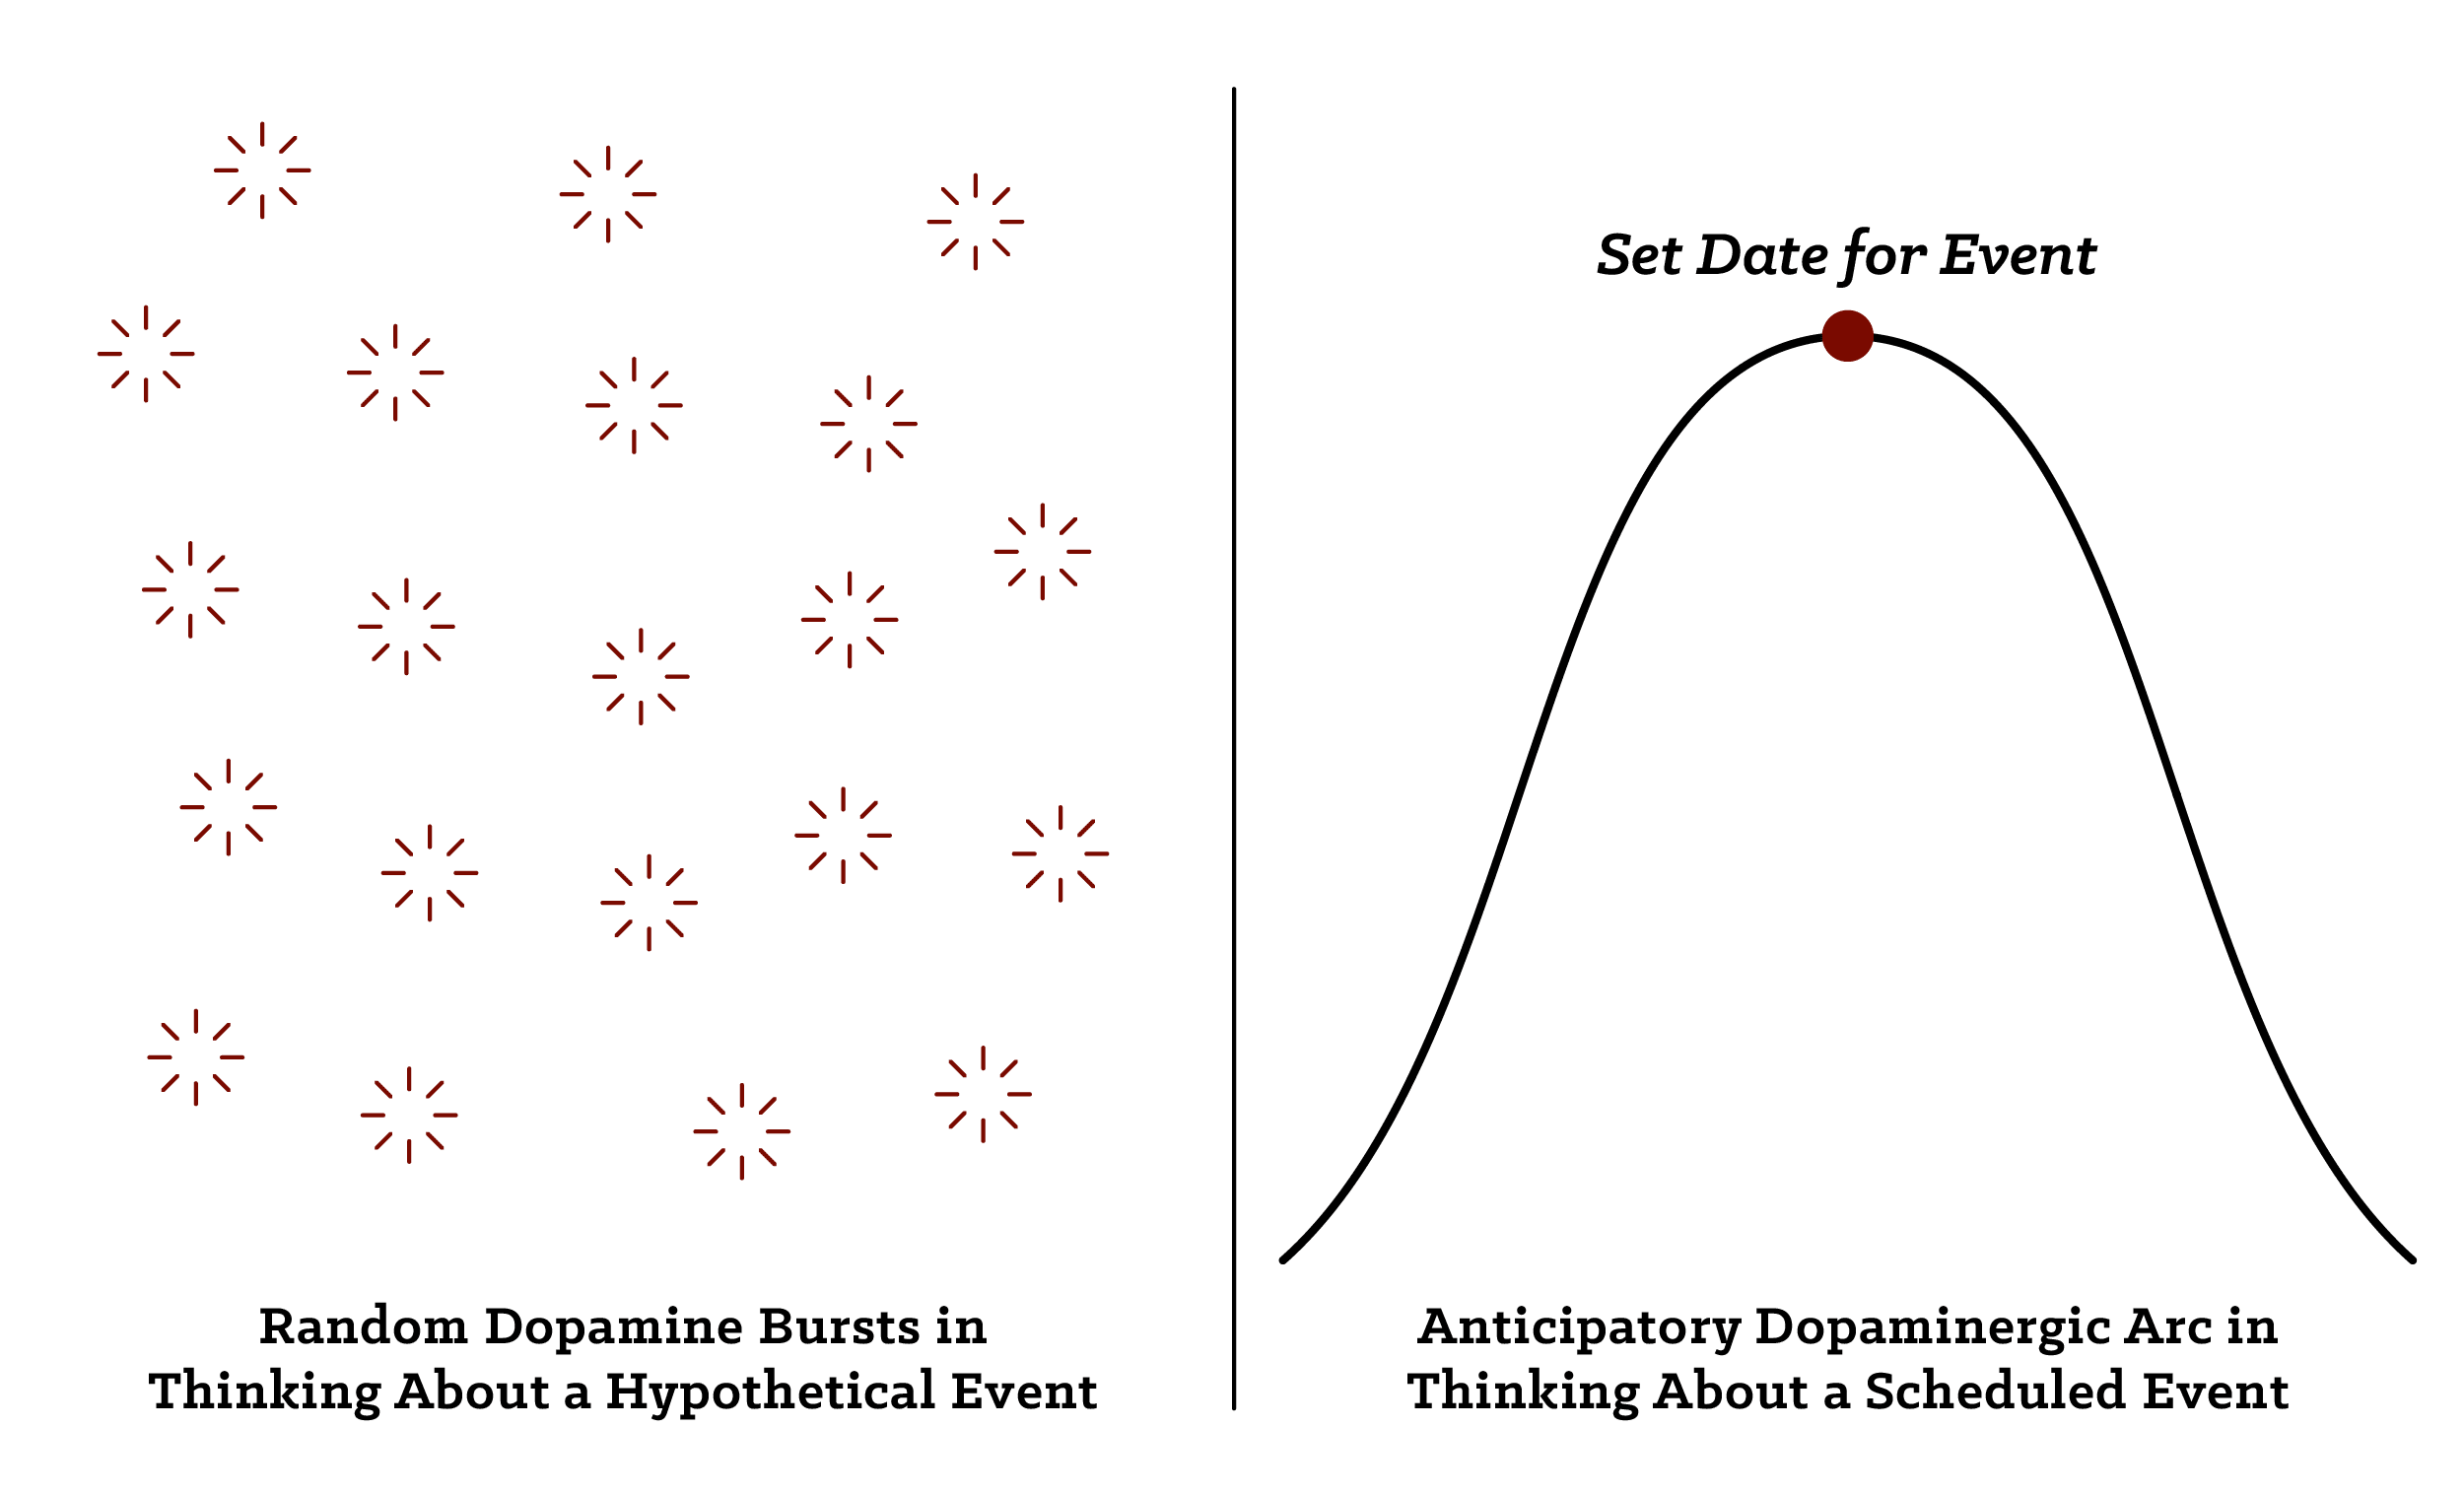 Graphical Comparison between Random dopamine bursts in thinking about a hypothetical event and Anticipatory dopaminegic arc in scheduled event.